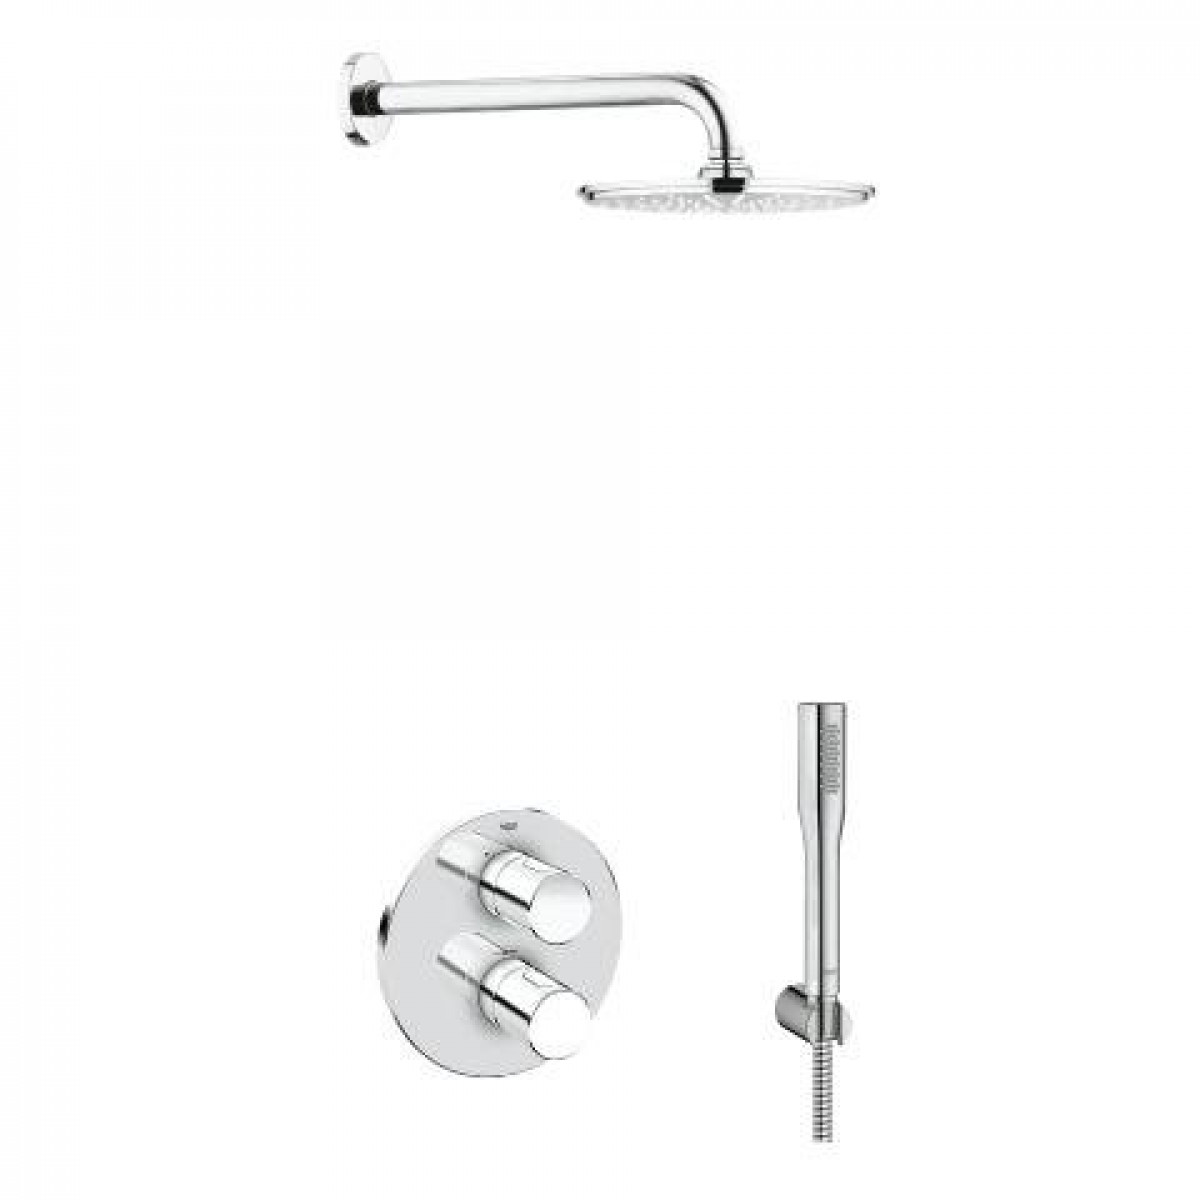 grohe grohtherm 3000 cosmo rainshower solution pack 4 118323. Black Bedroom Furniture Sets. Home Design Ideas